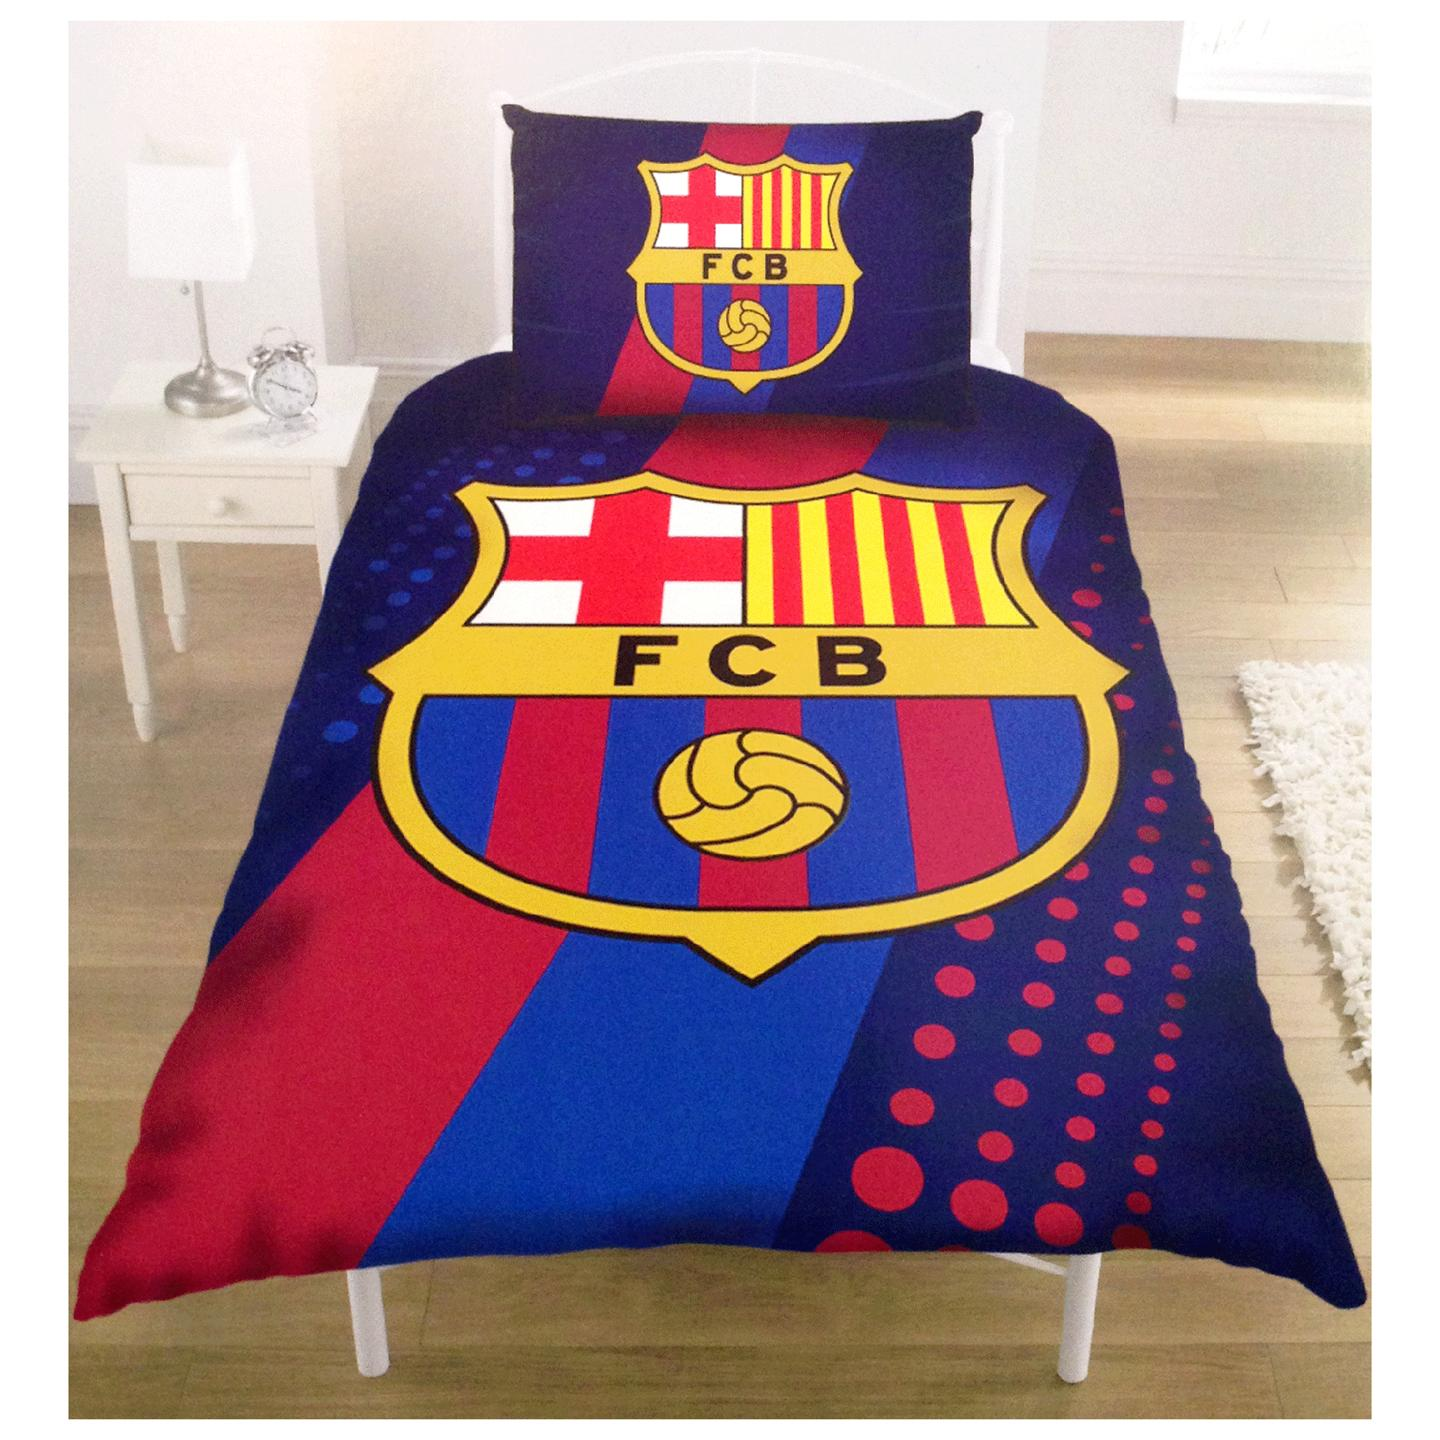 Football club single duvet cover bedding sets arsenal for Man u bedroom stuff